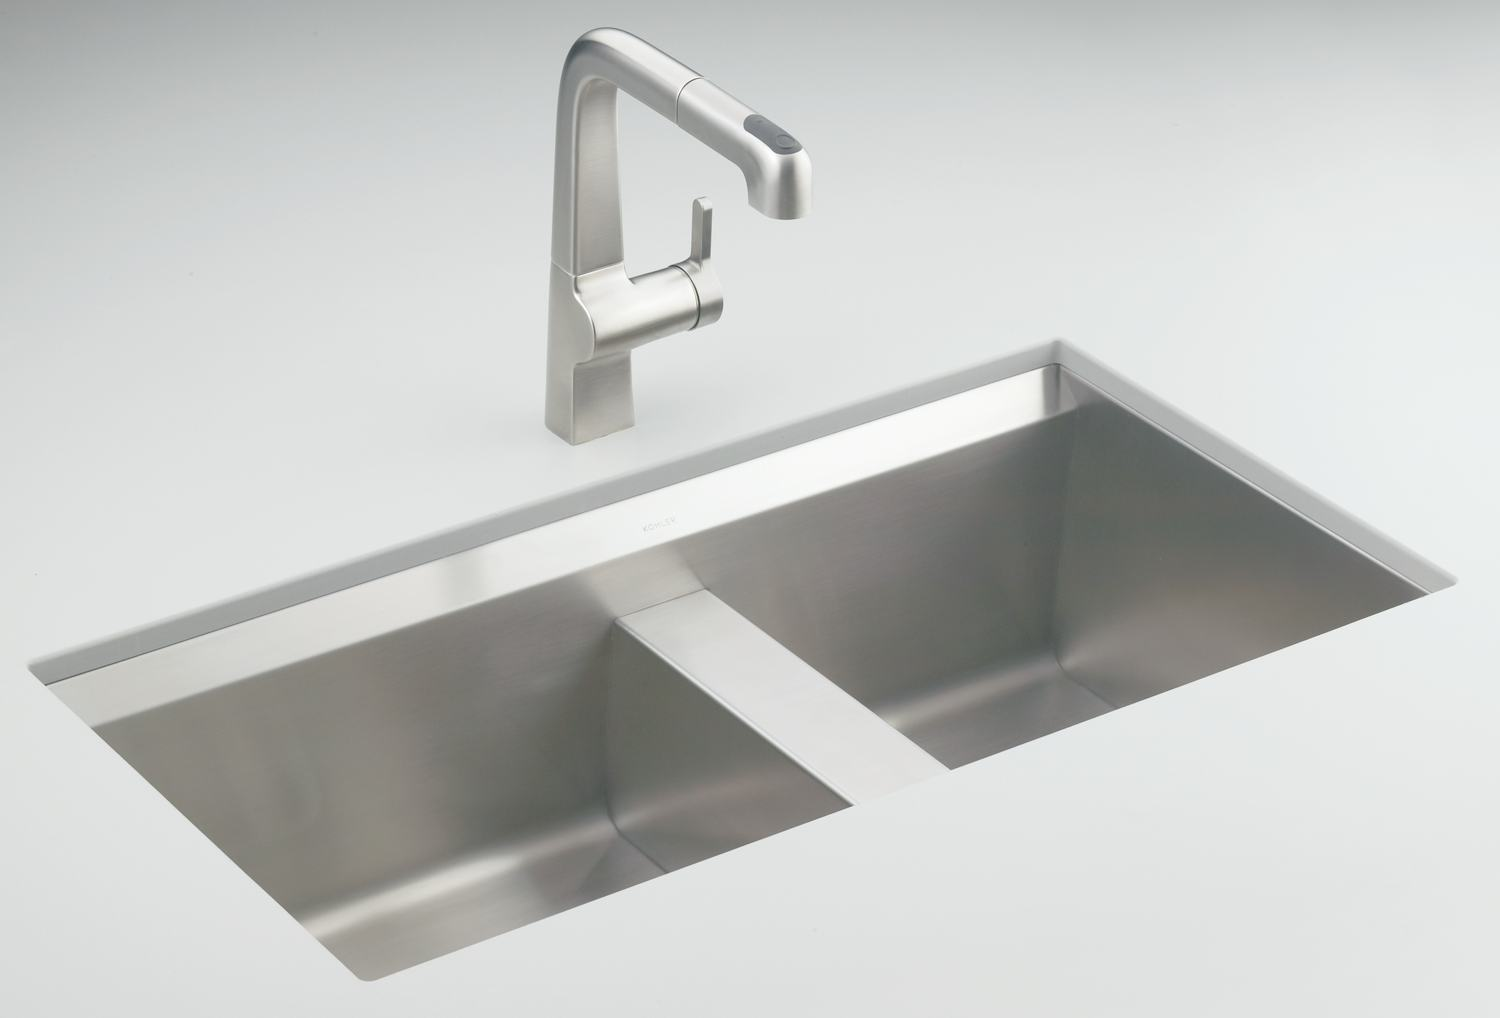 kohler k 3672 na 8 degree offset double basin